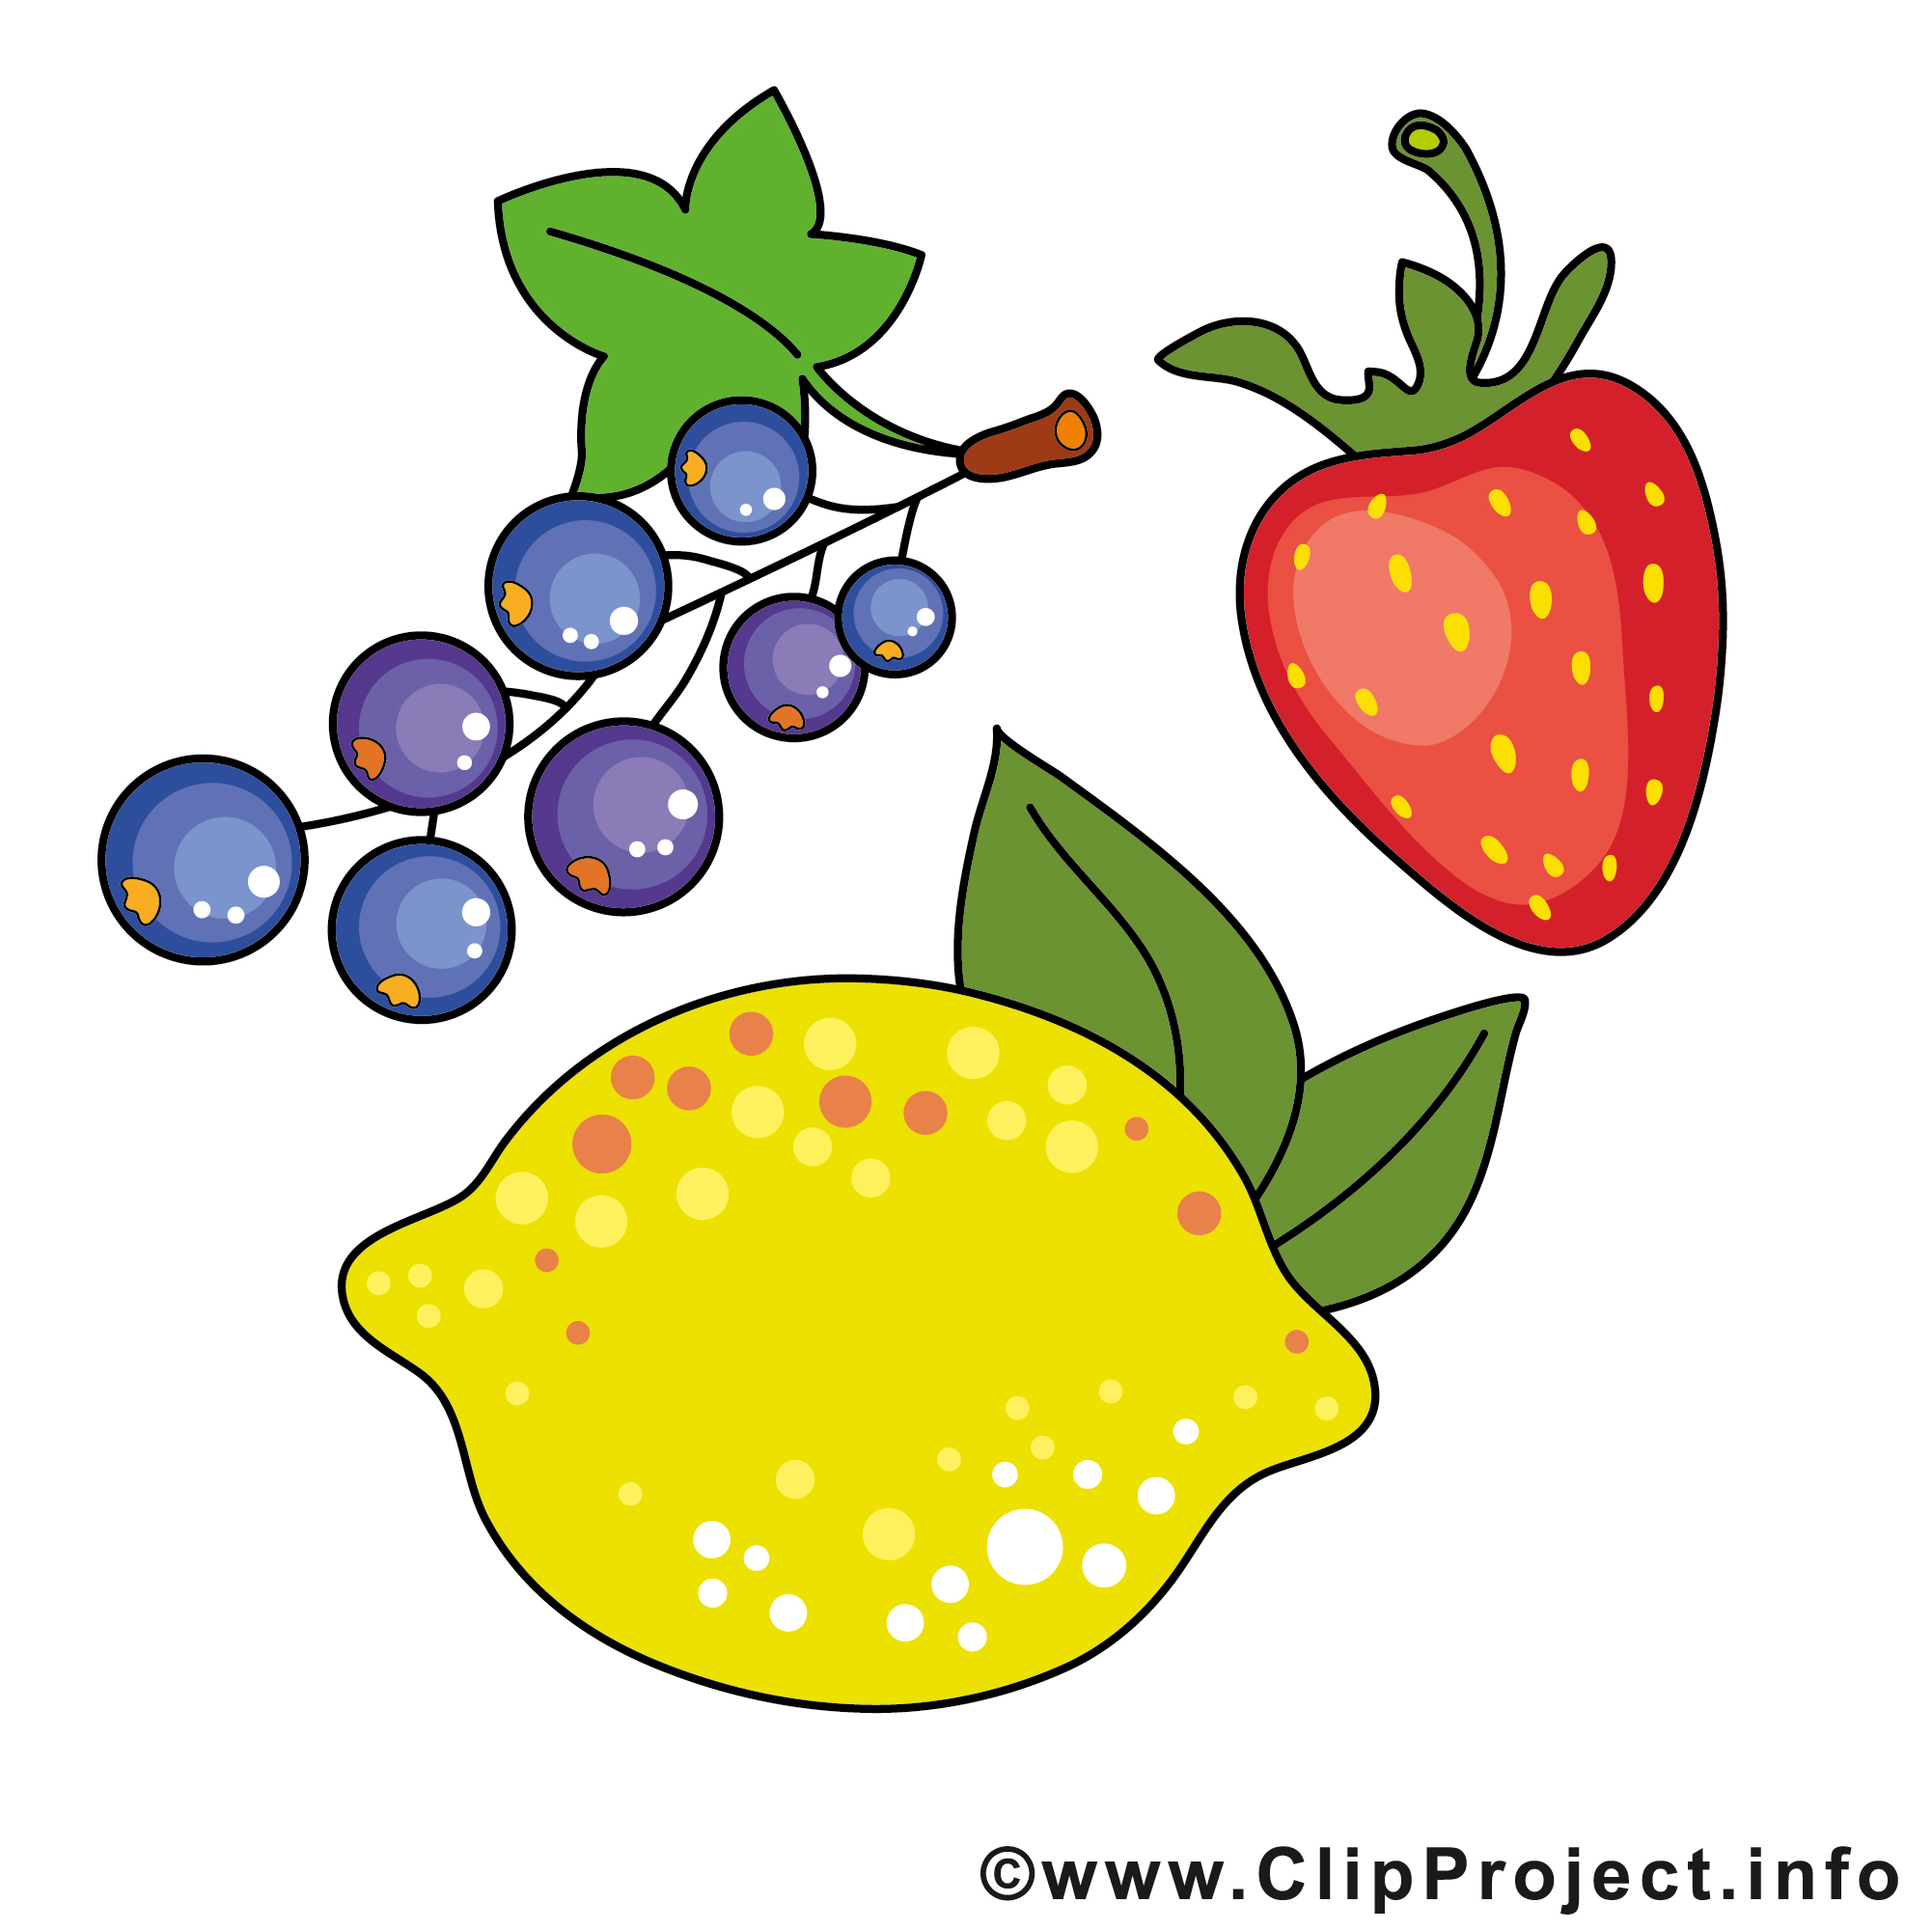 Fruits dessins gratuits t l charger clipart fruits et l gumes dessin picture image - Dessins gratuits a telecharger ...